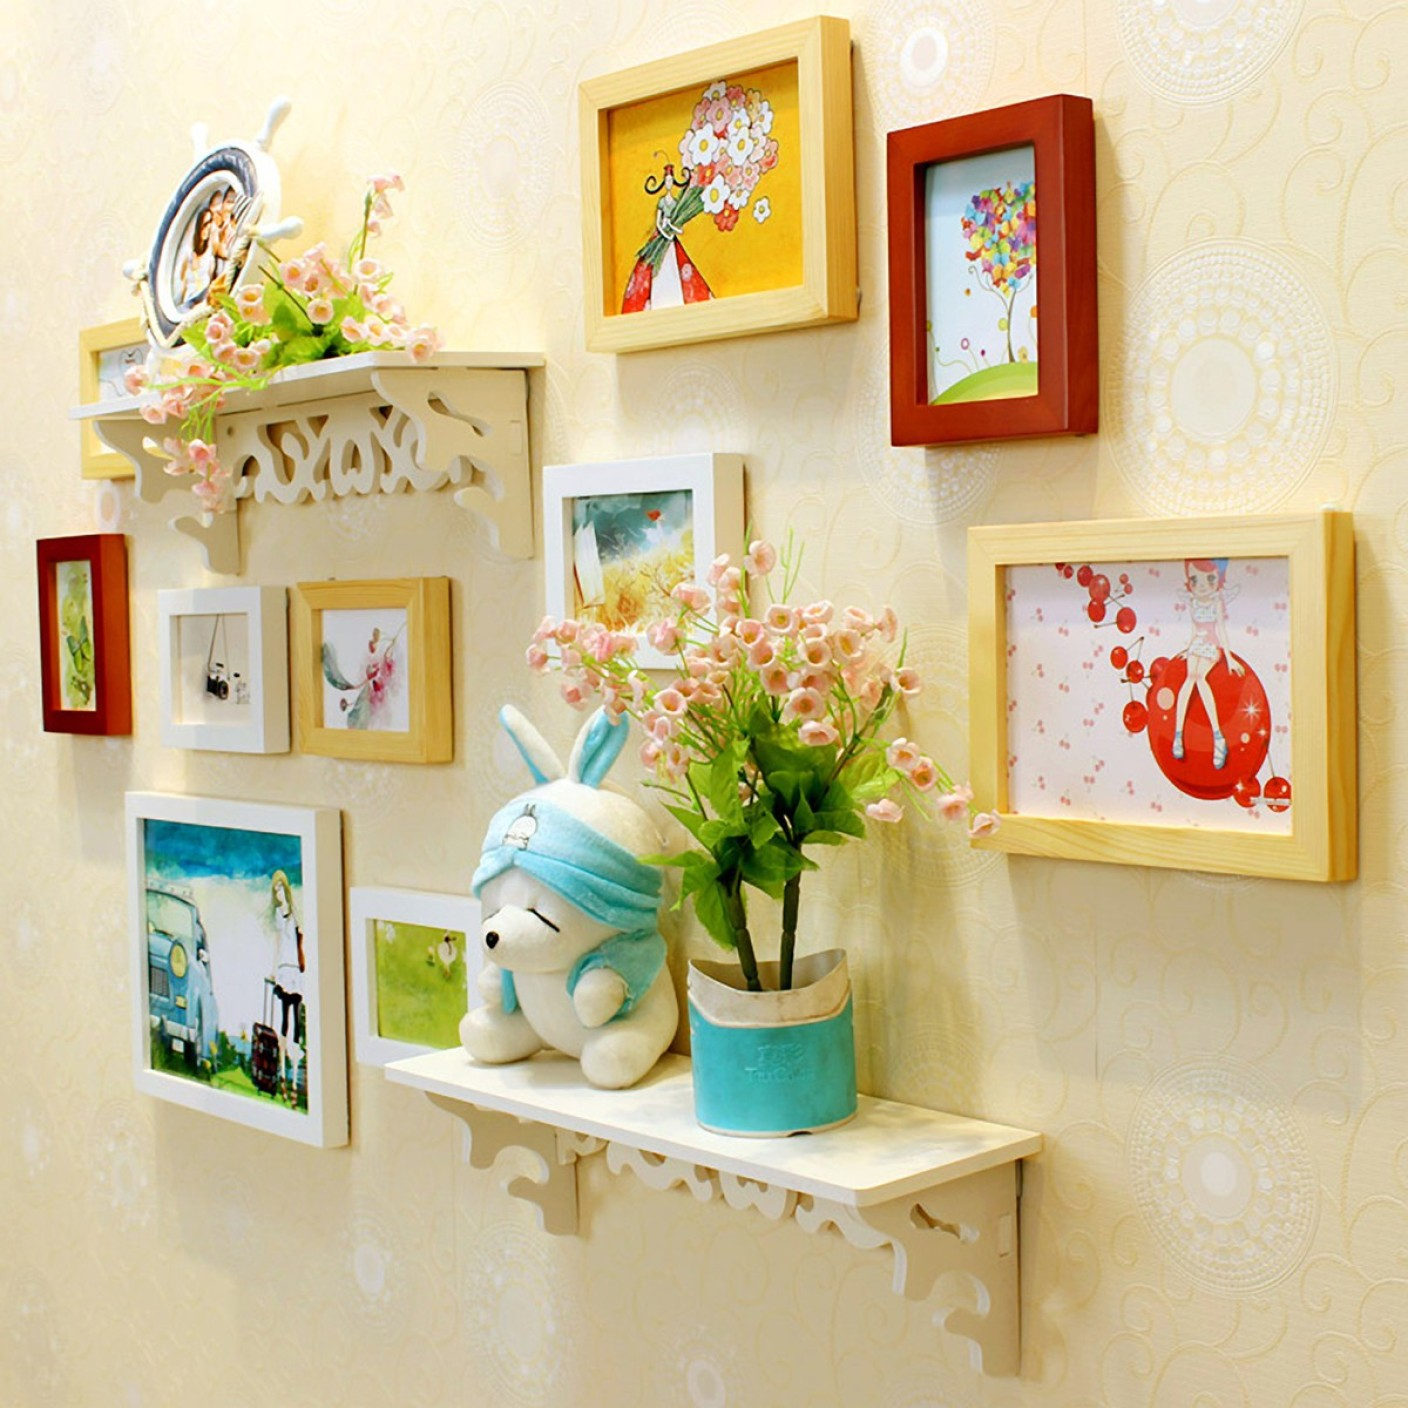 Contemporary Wall Frames Ideas Crest - The Wall Art Decorations ...